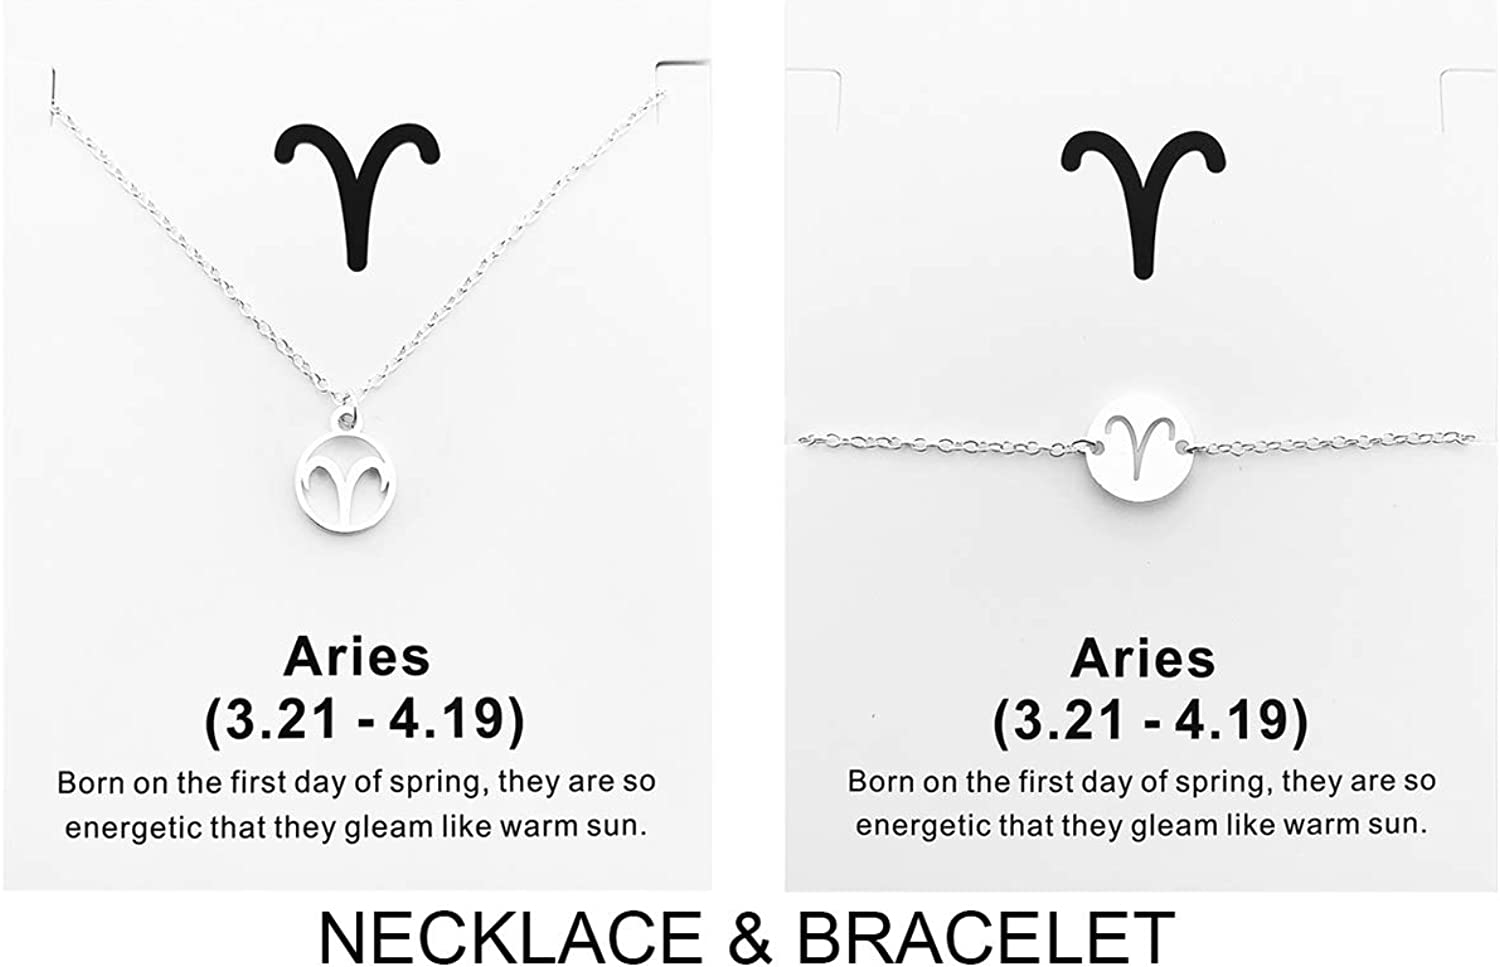 Your Always Charm 2Pcs Zodiac Necklace for Women,12 Constellation Zodiac Pendant Necklace Astrology Necklace with Message Card Zodiac Jewelry Gift